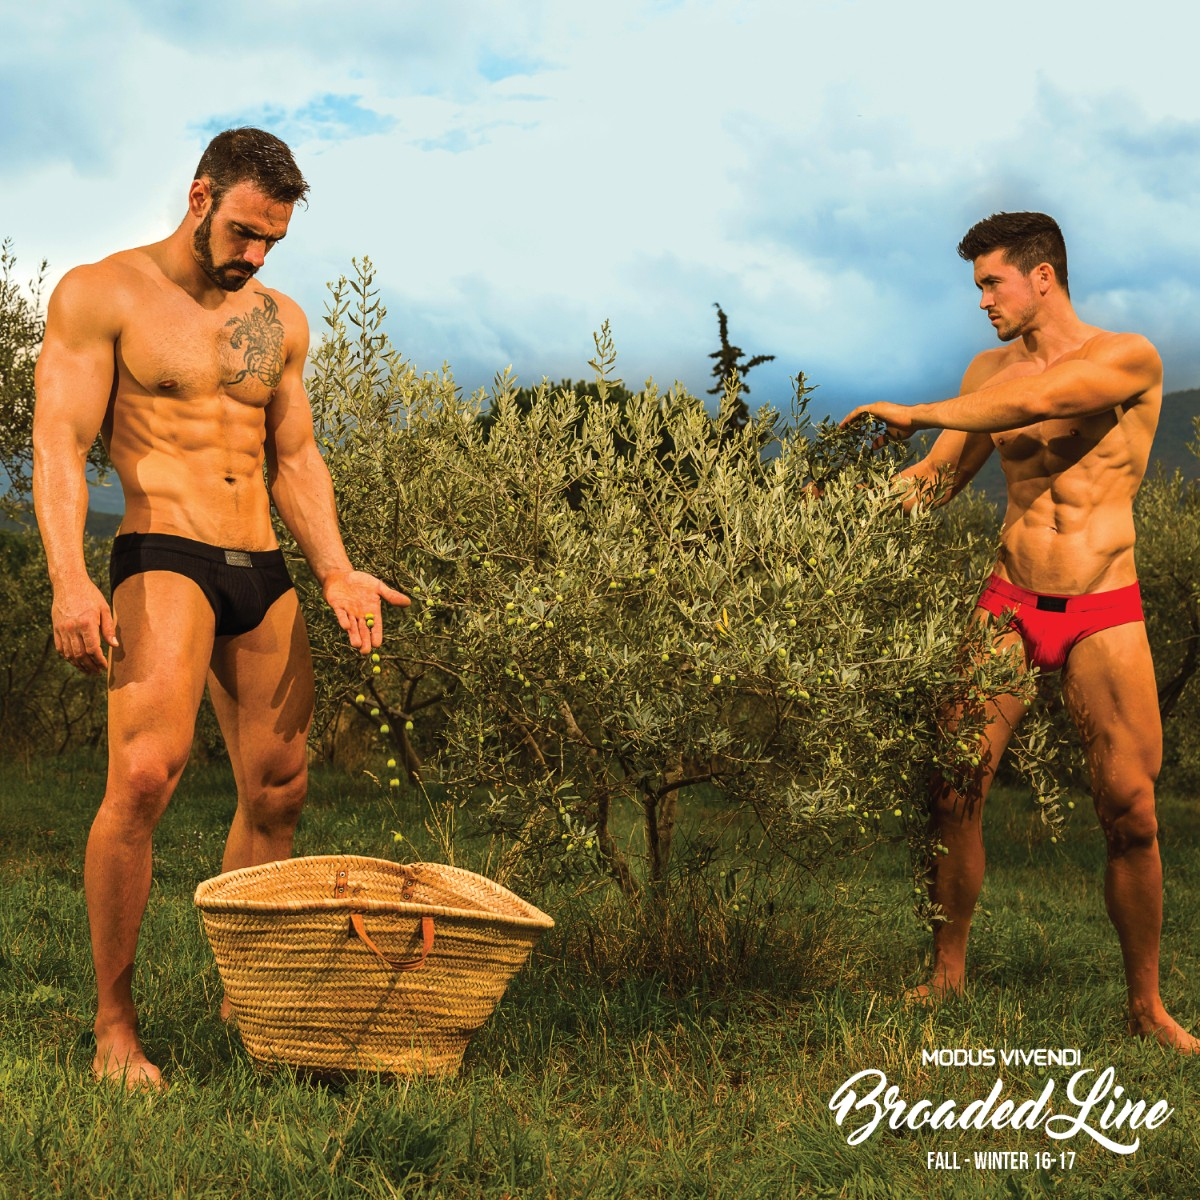 Your new basics by Modus Vivendi - Broaded line